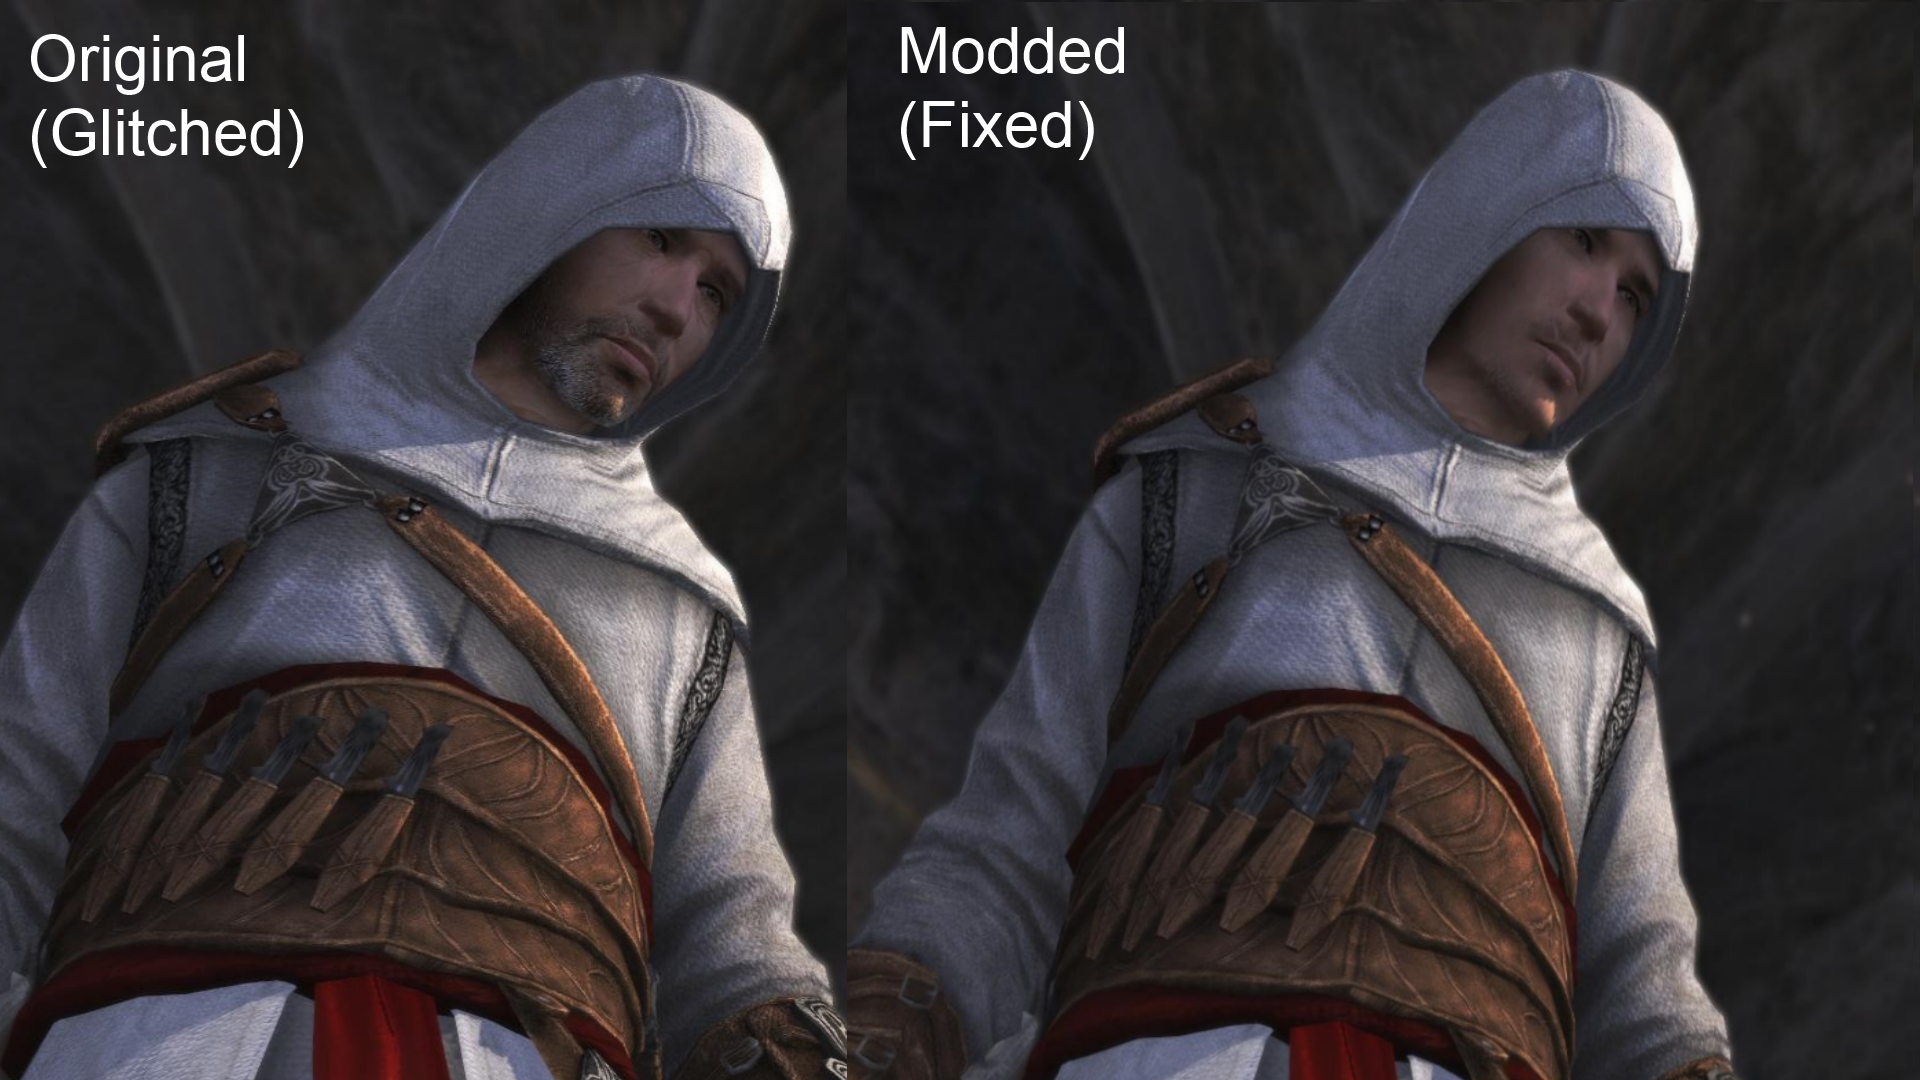 Altair Face Glitch Fixed In Original Memories Image Mod Db